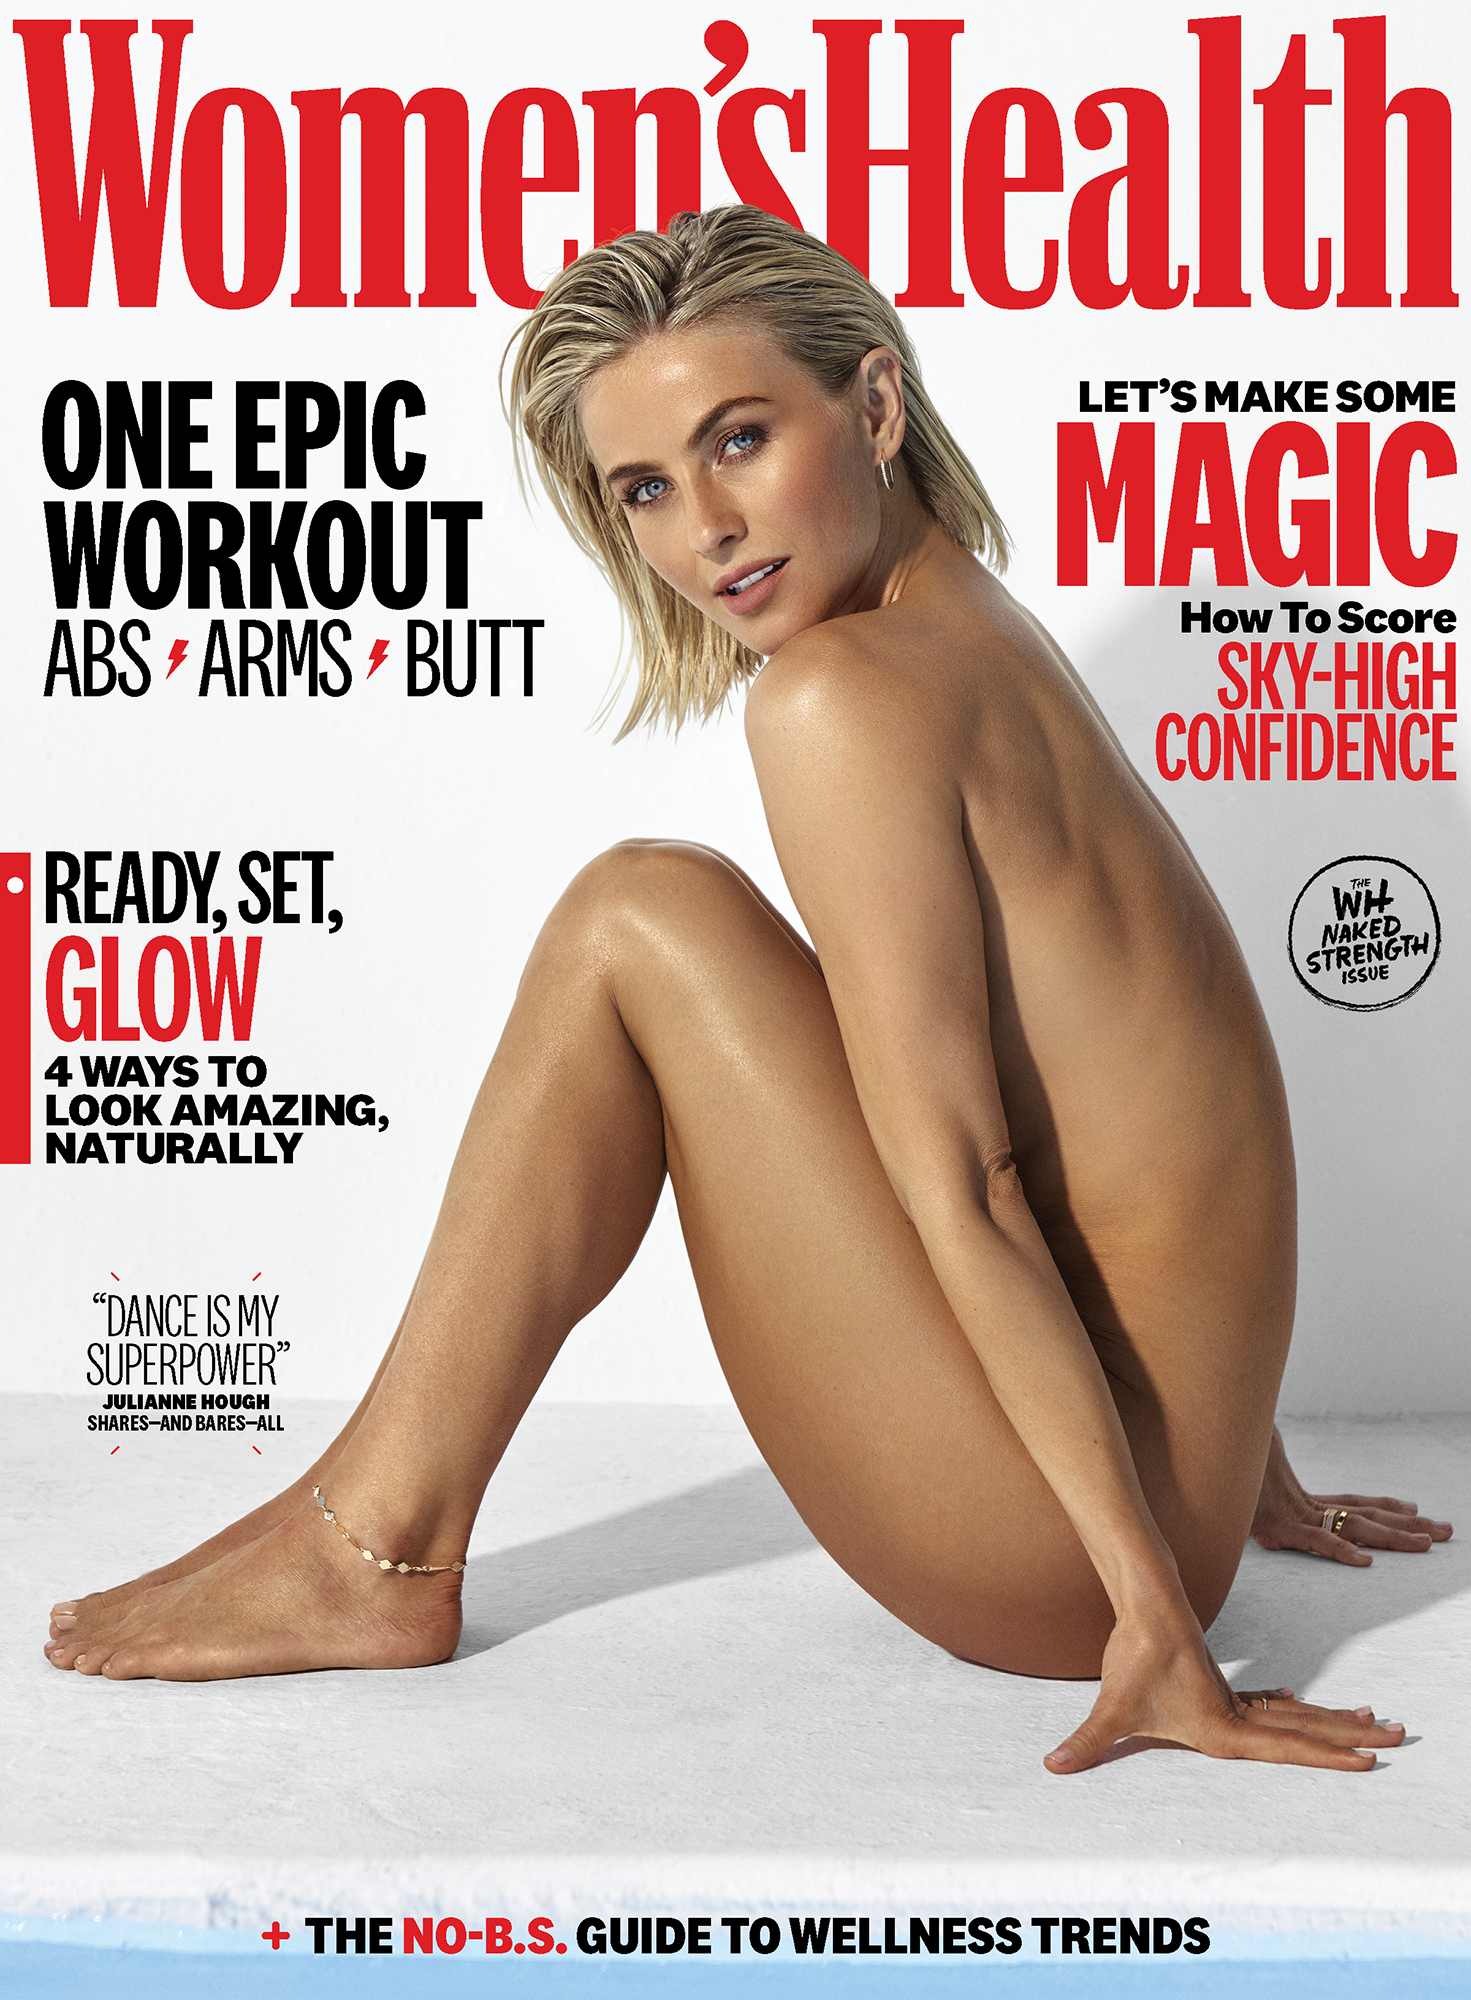 Jeana Smith Naked julianne hough nude on women's health cover: 'naked strength